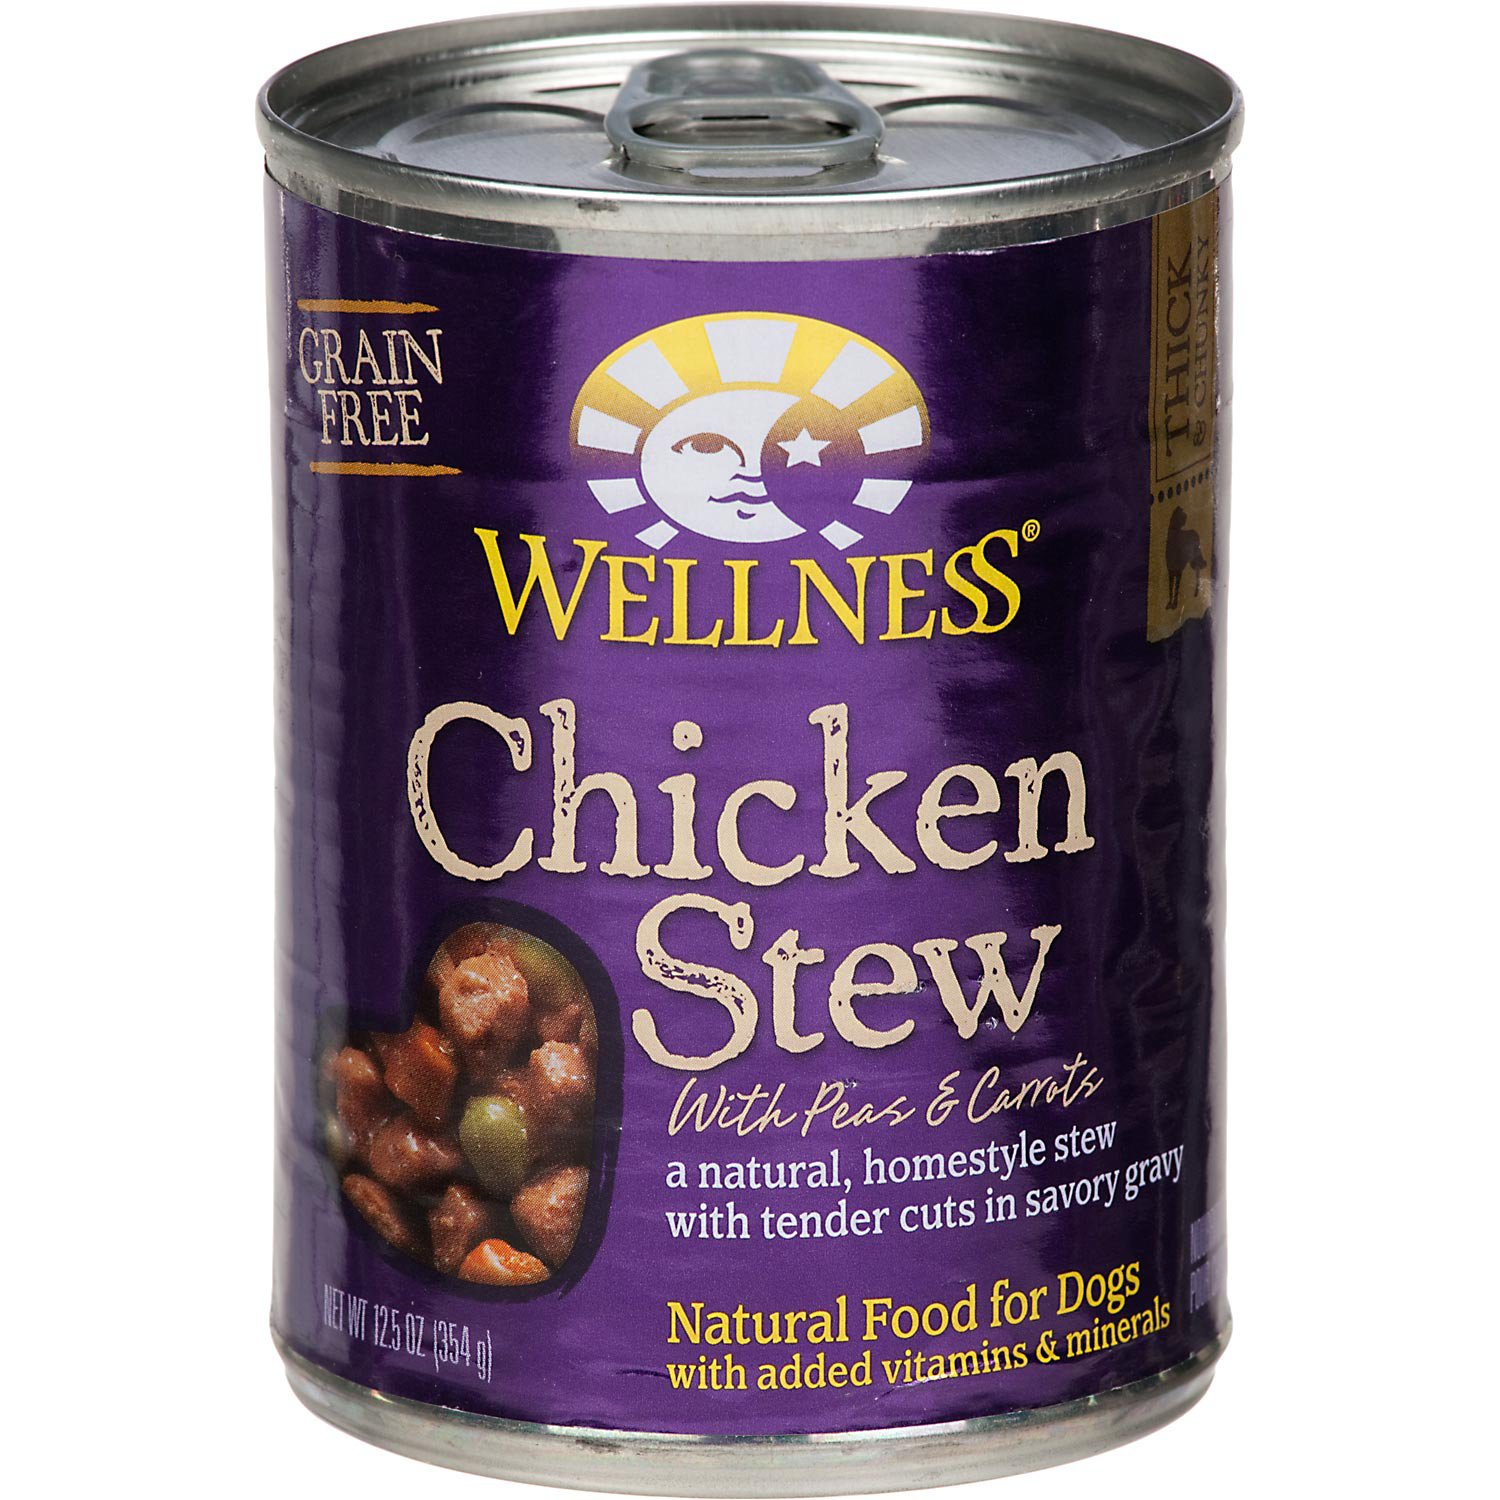 Canned Dog Stew